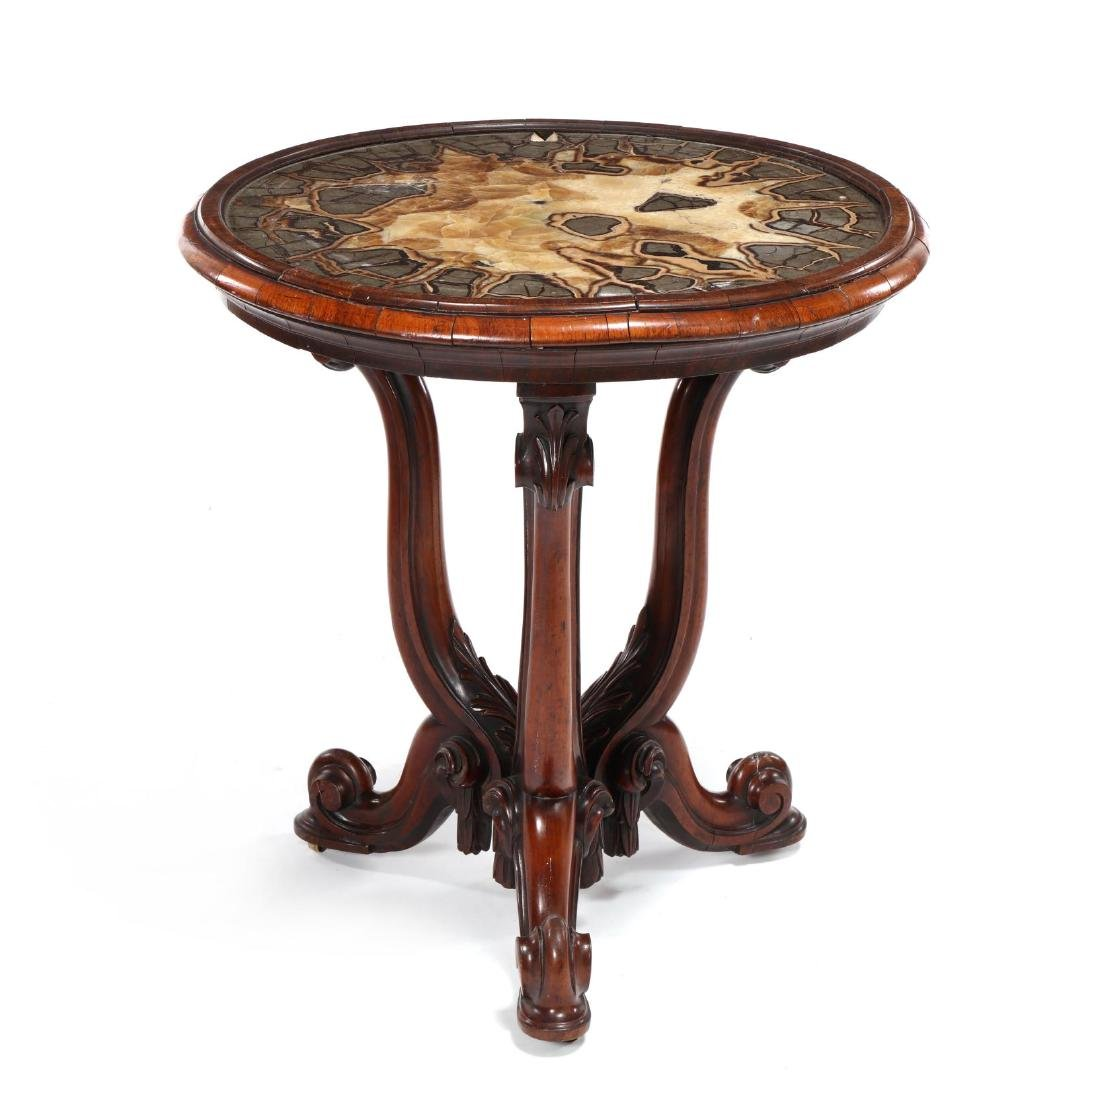 Italian Rococo Revival Specimen Top Parlour Table